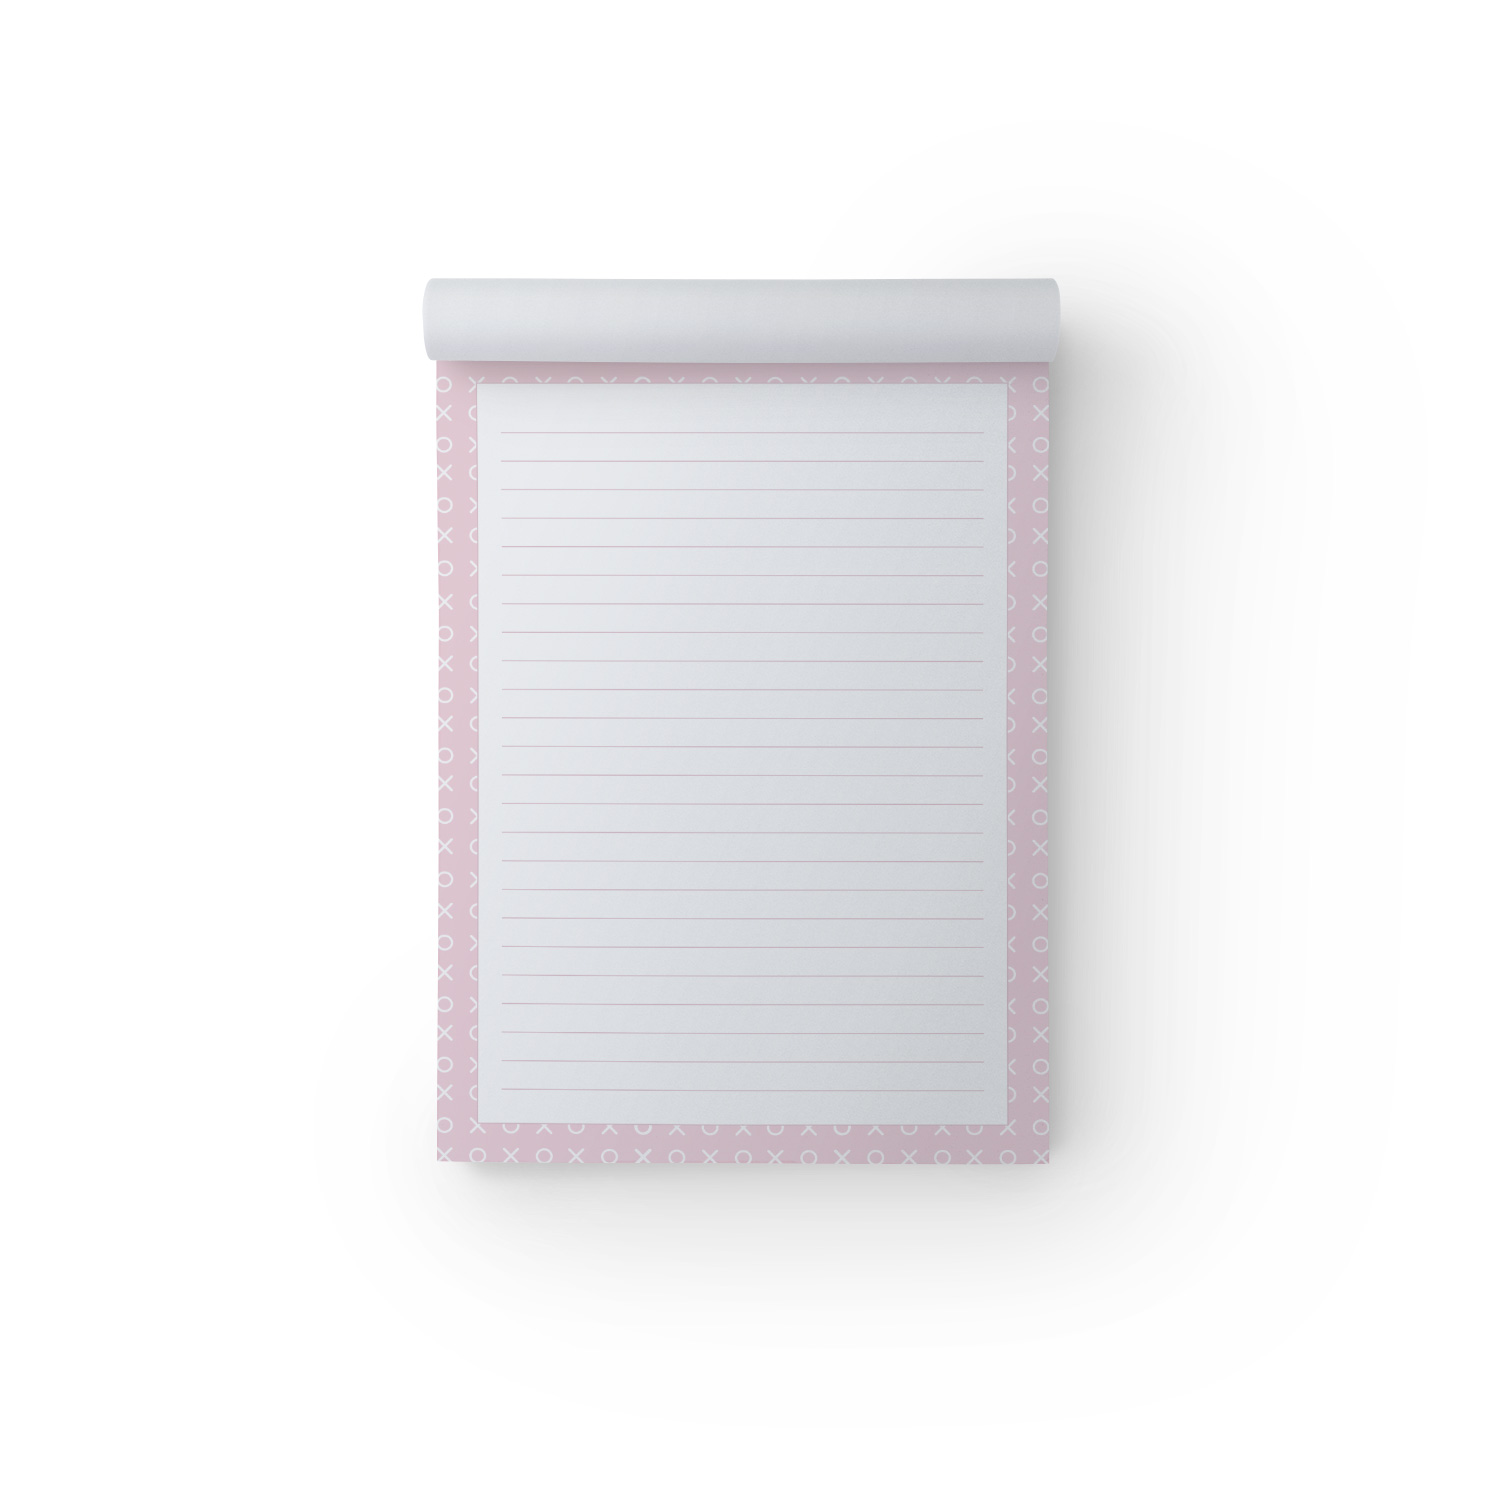 X O Pink A5 Notepad